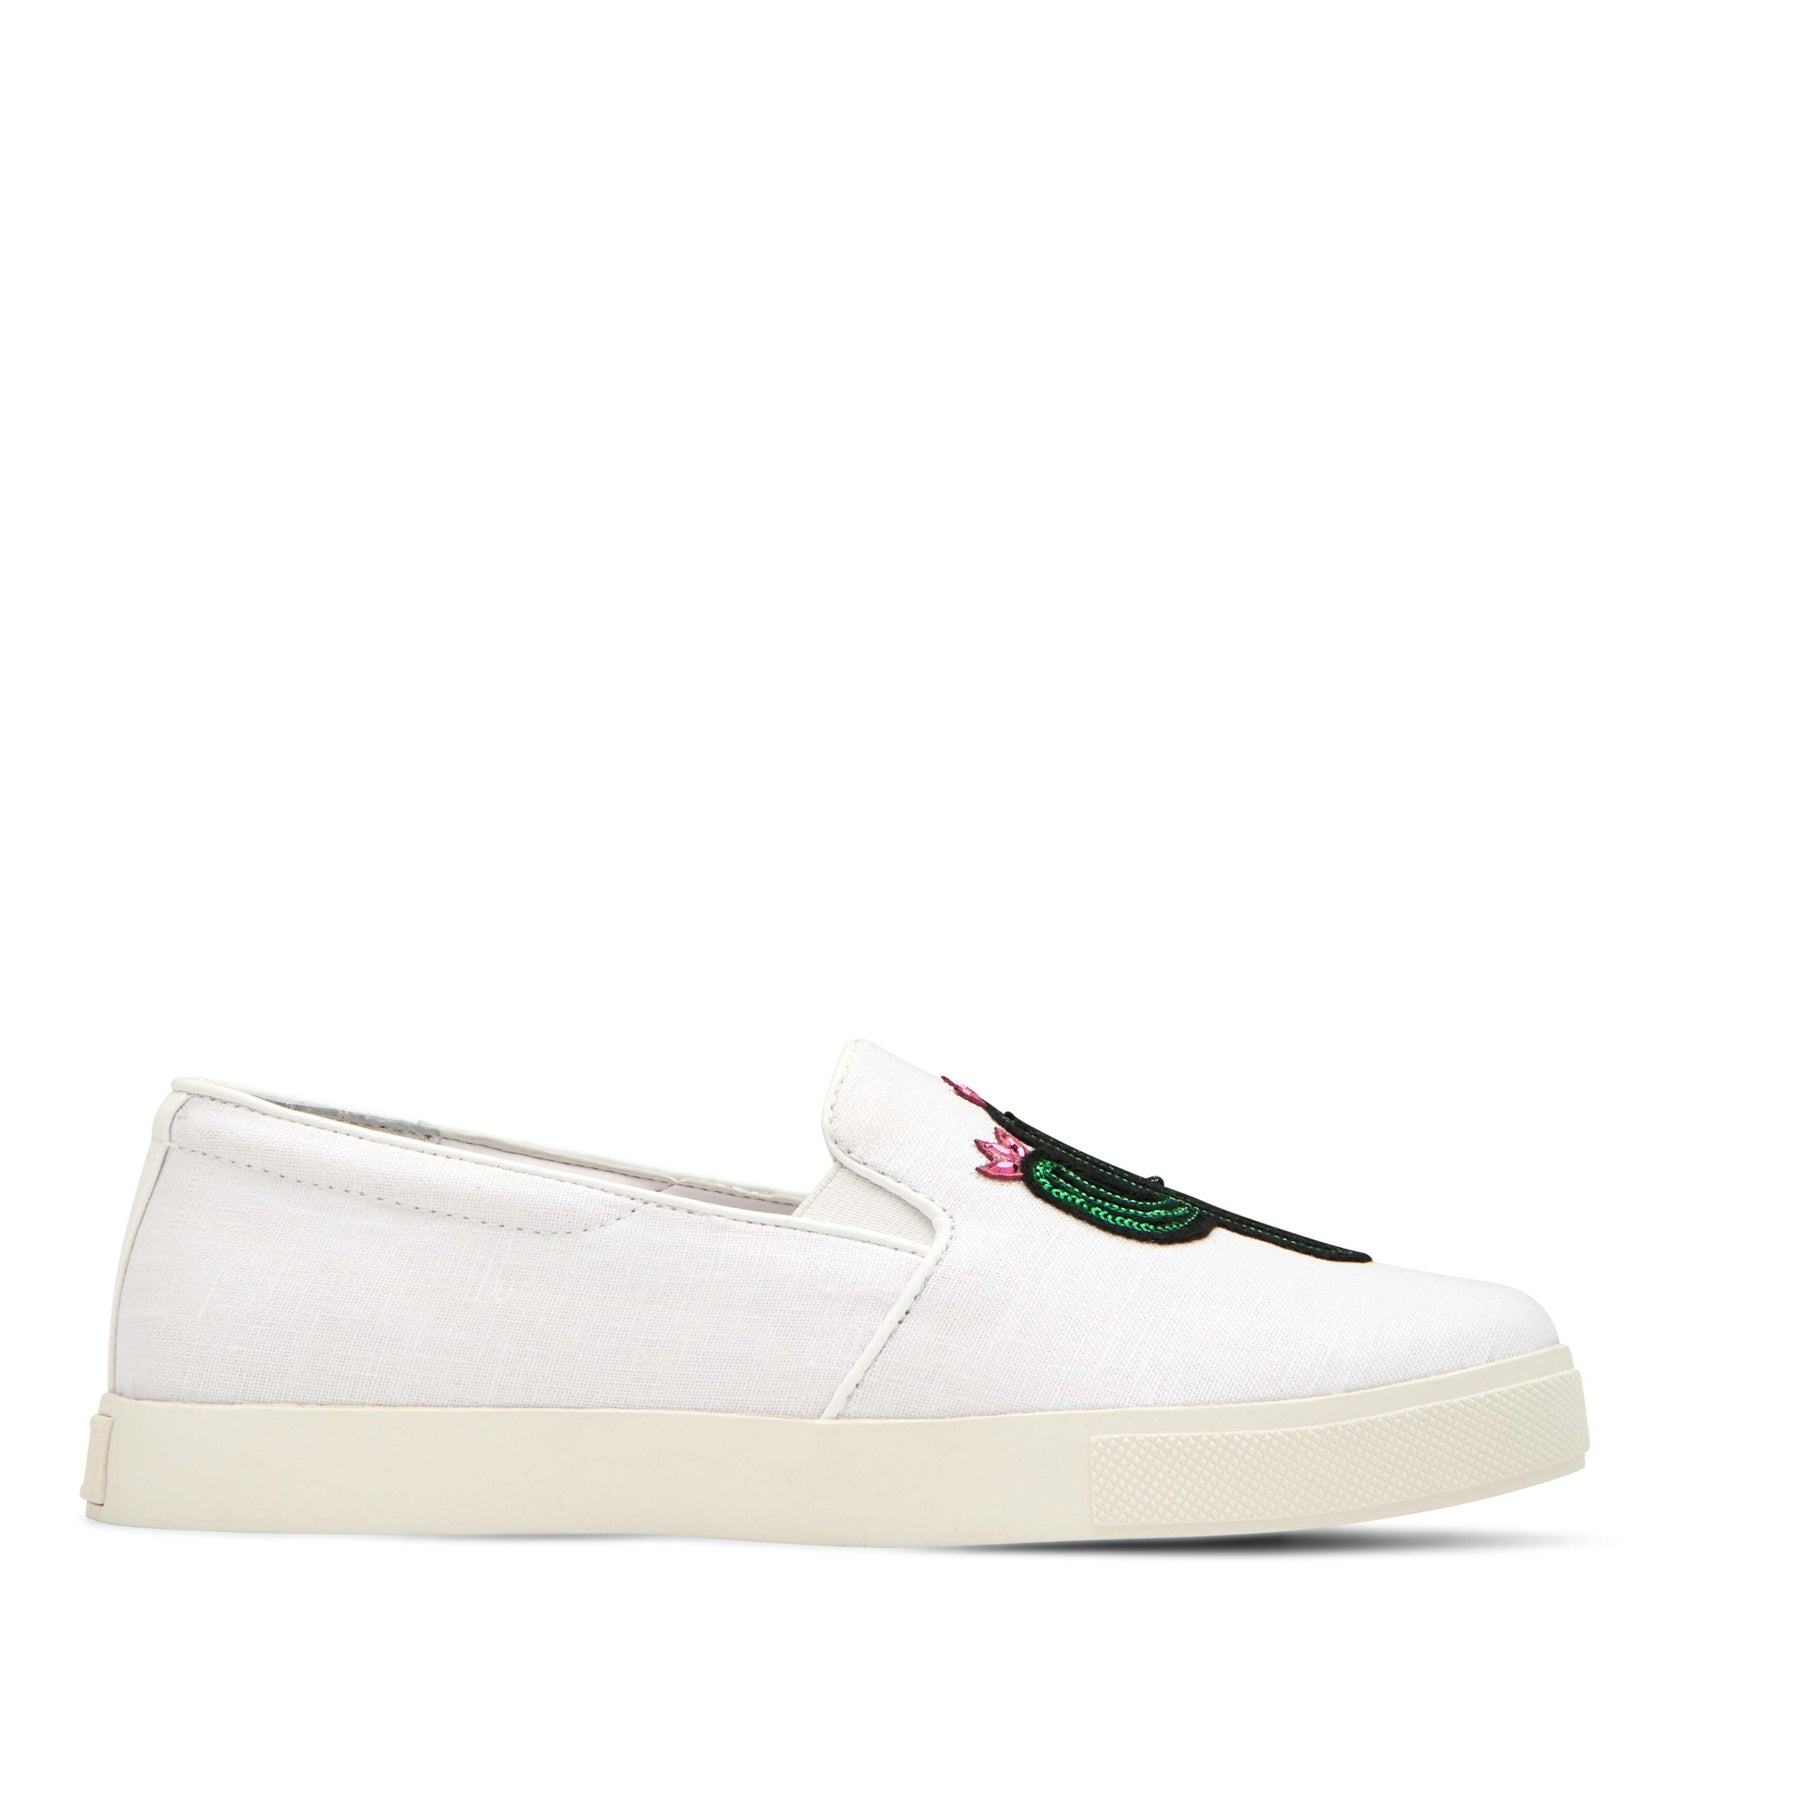 katy perry slip-on sneaker in cactus size 5.5   the kerry